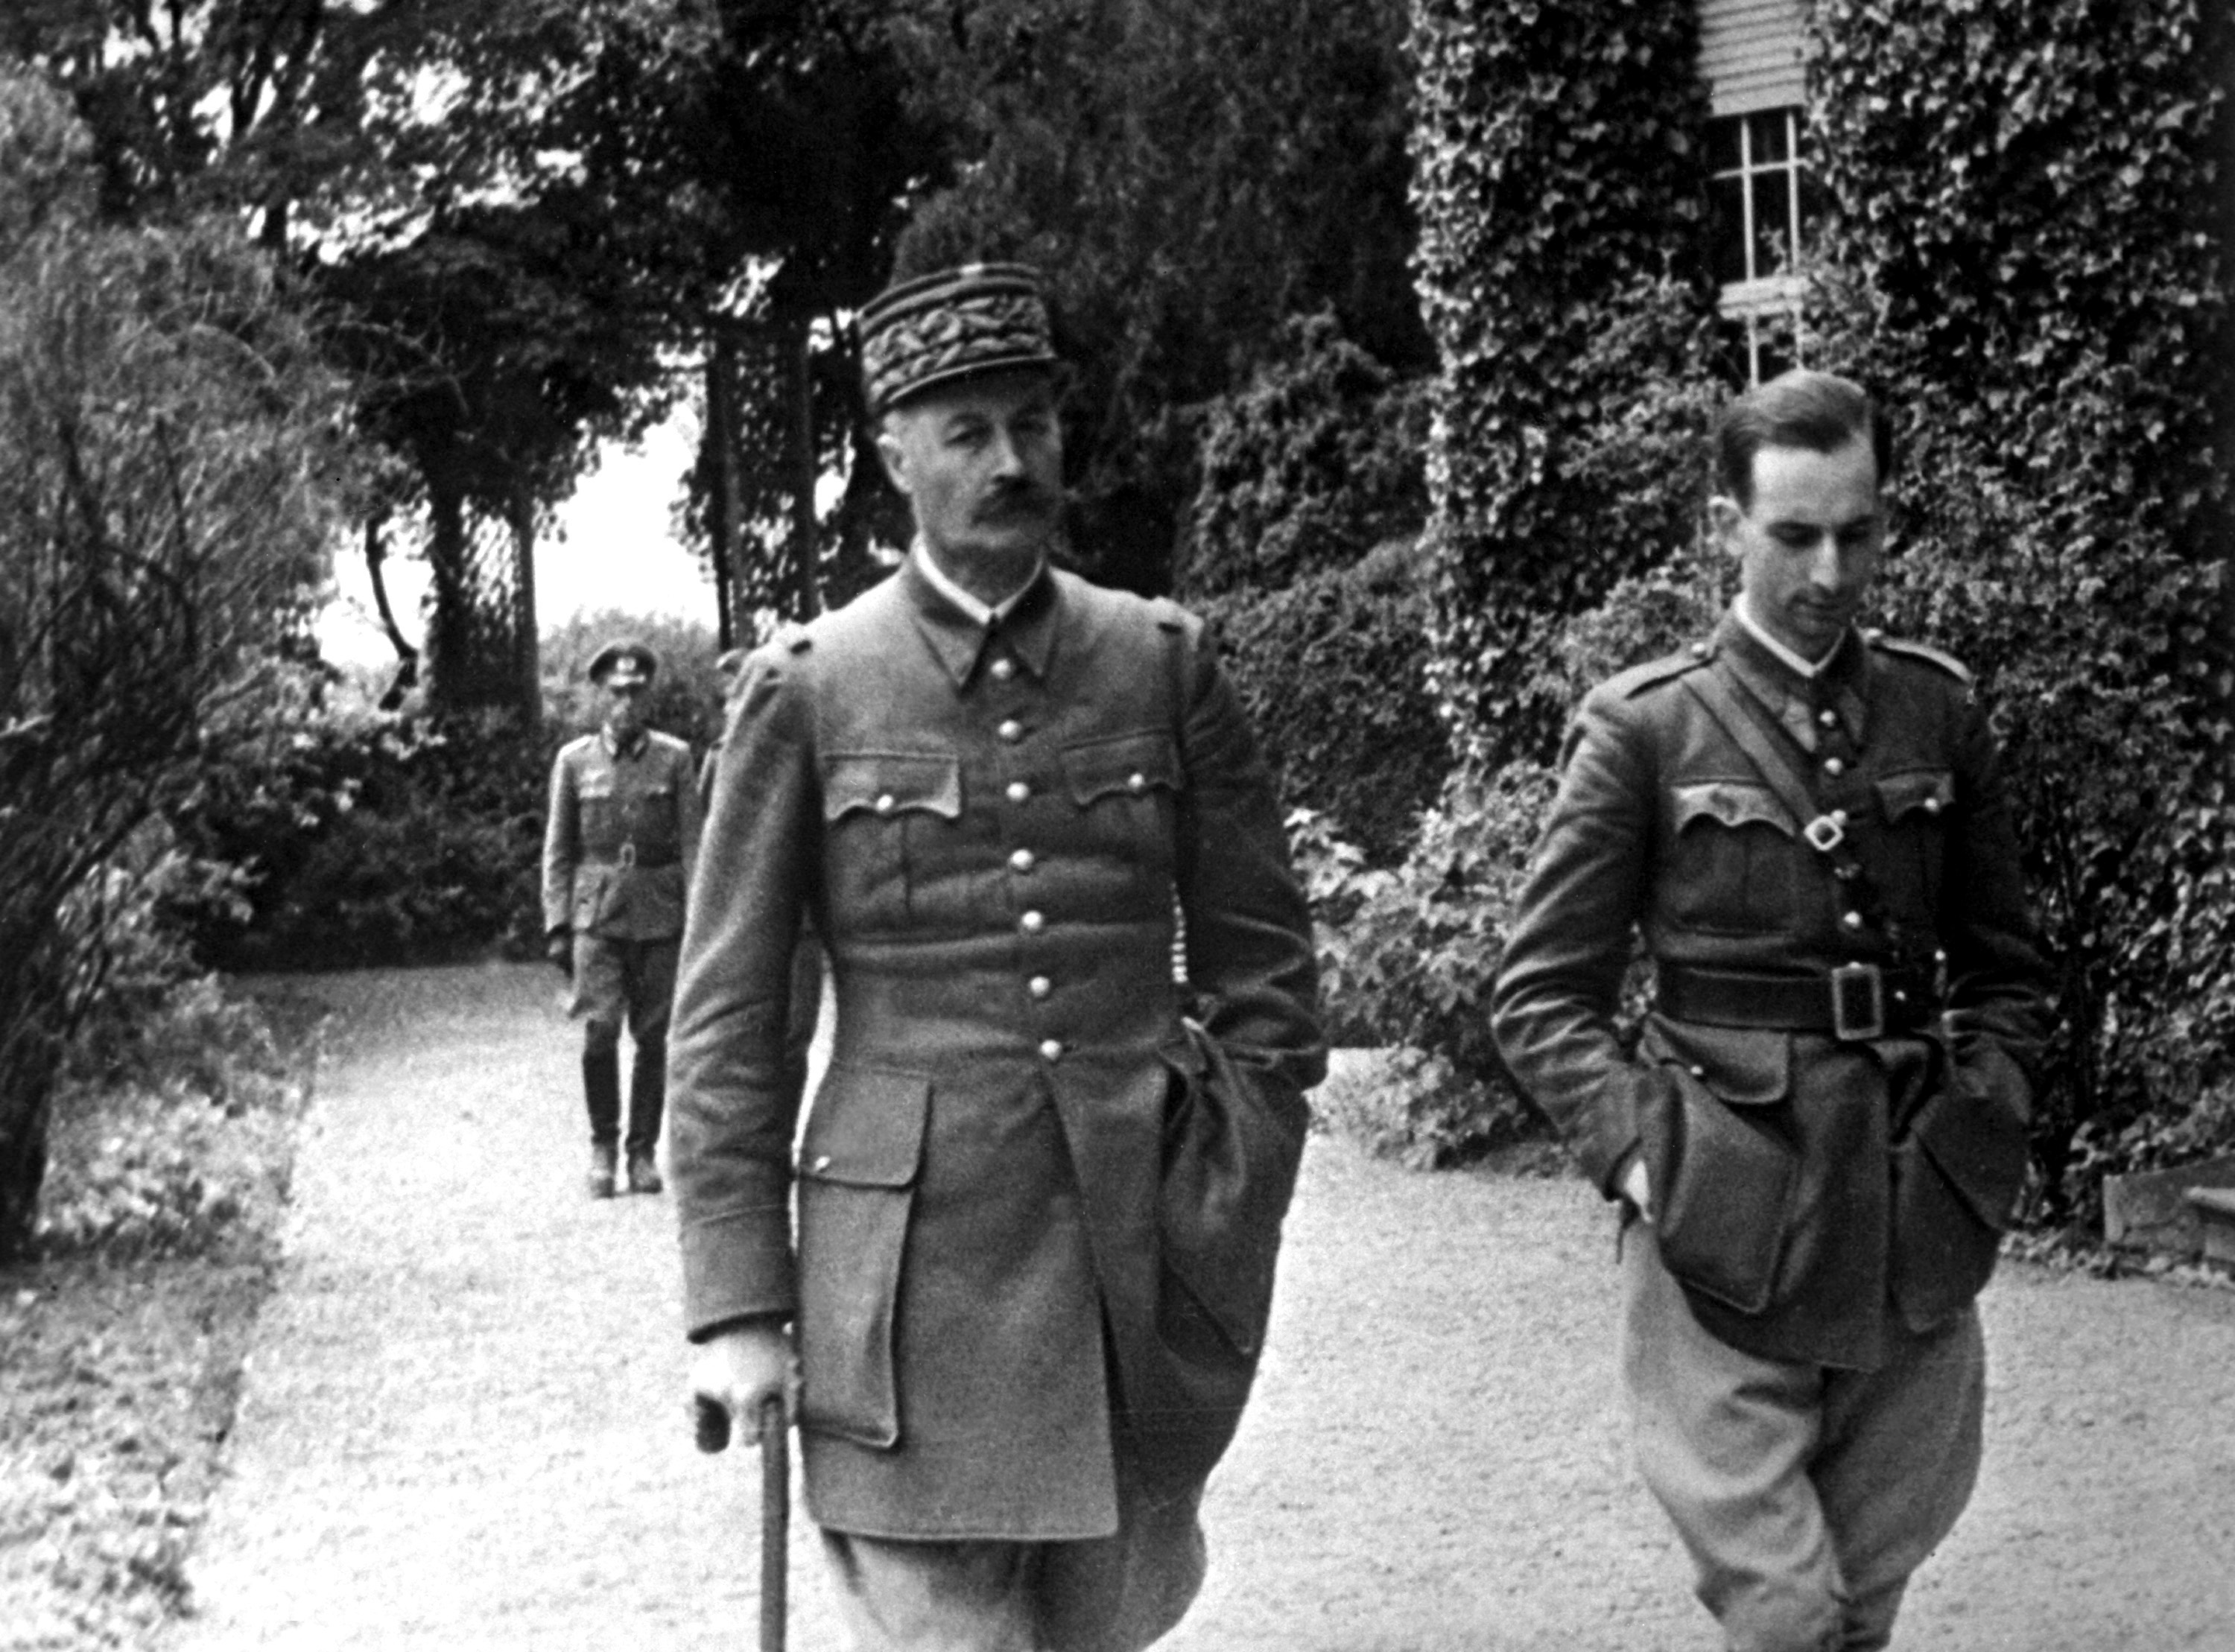 Captured French Army General Giraud at the house where he was imprisoned, Germany, 1940-1941 (US National Archives)